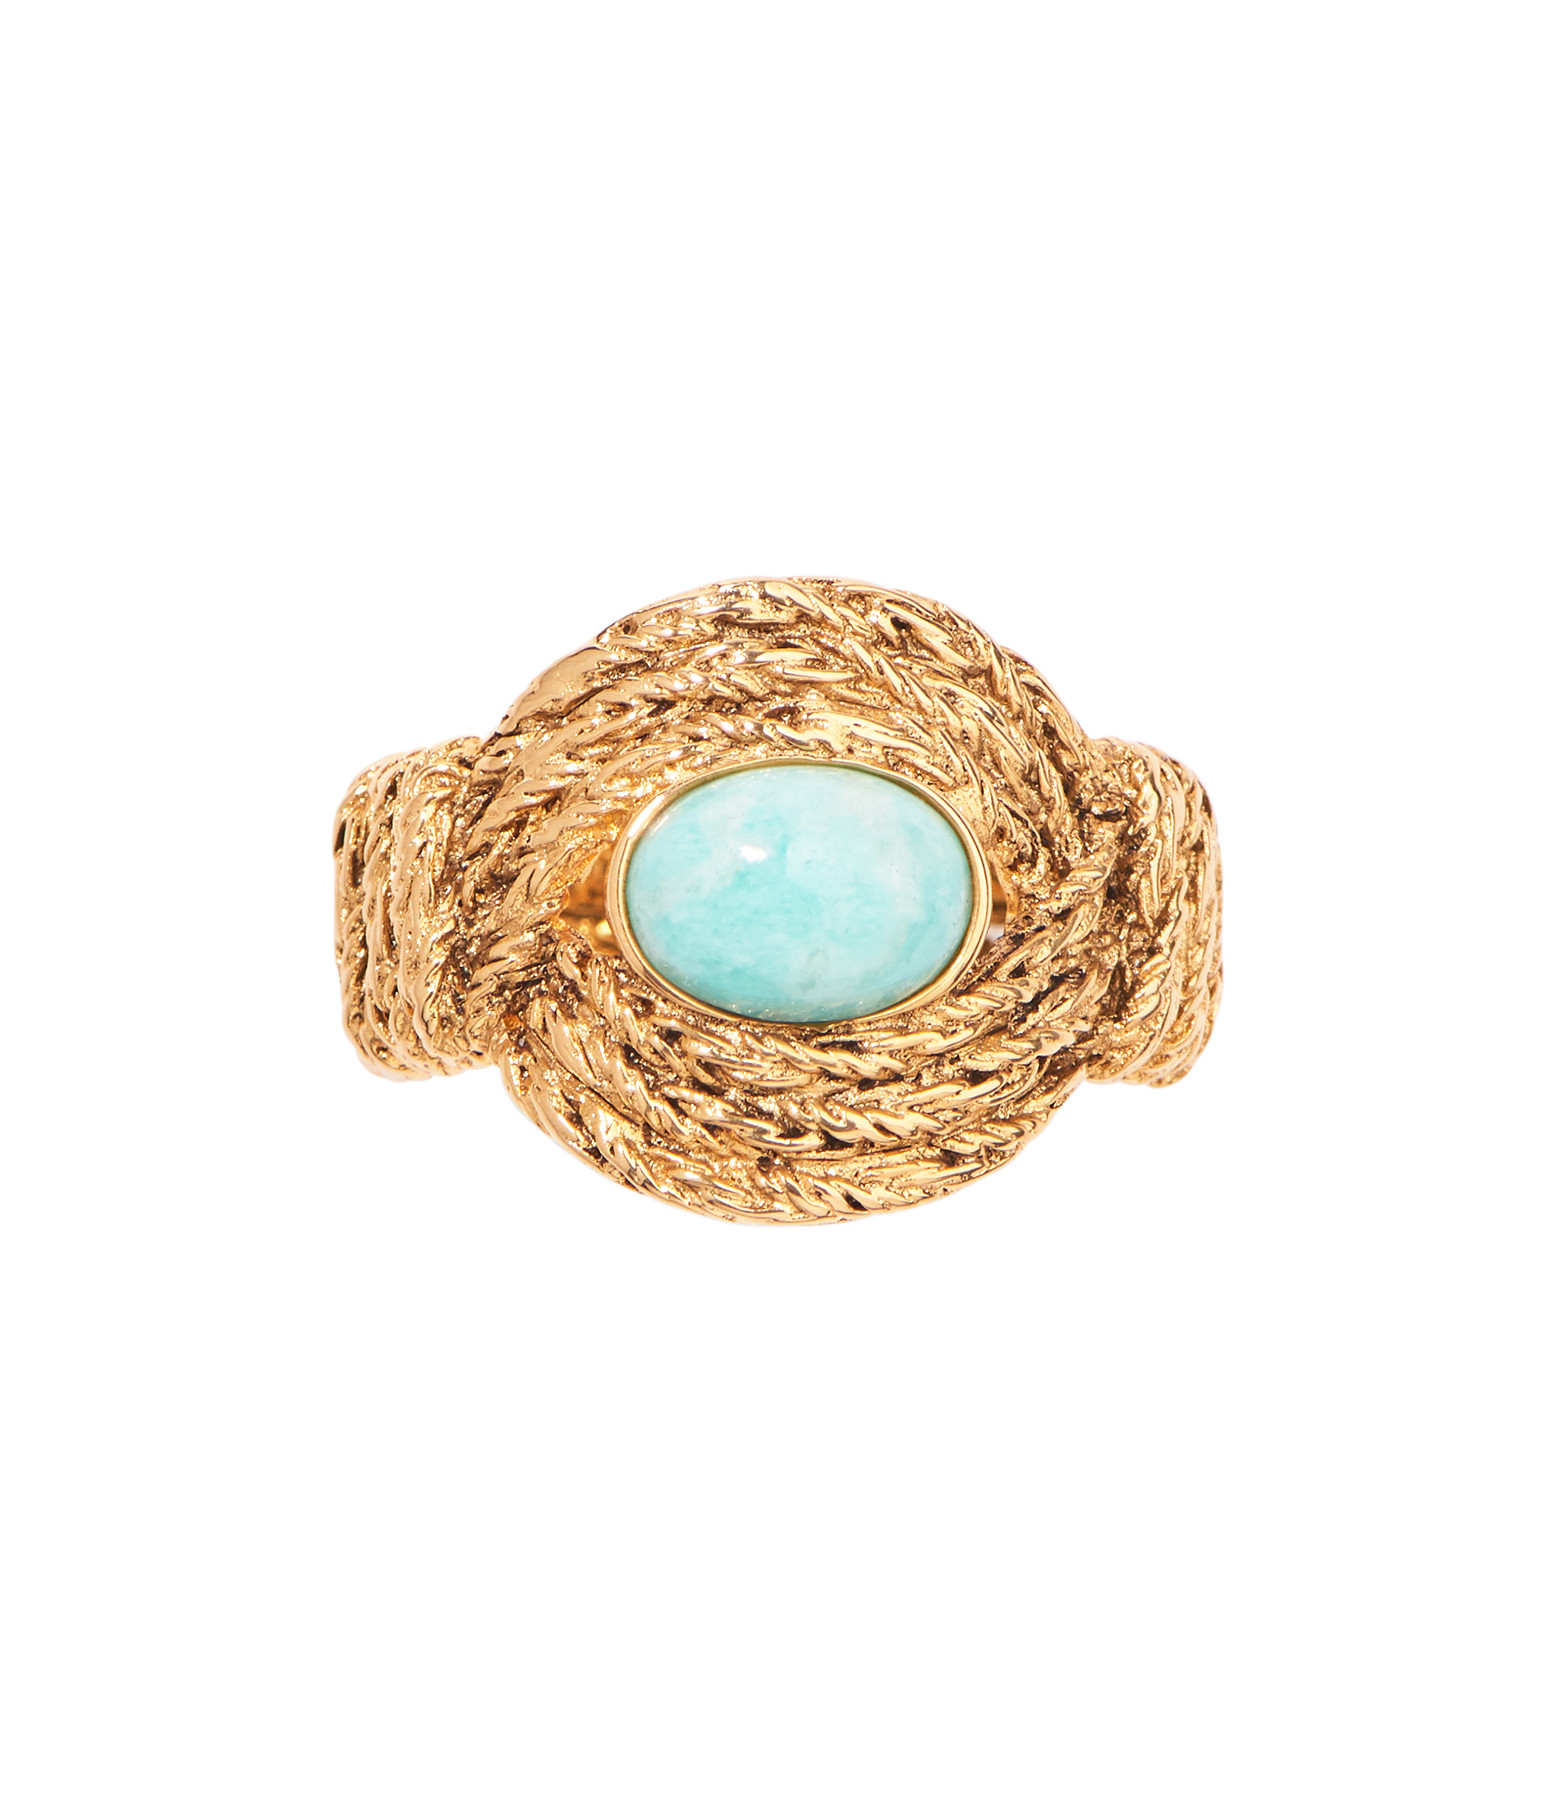 AURELIE BIDERMANN - Bague Mizuhiki Amazonite